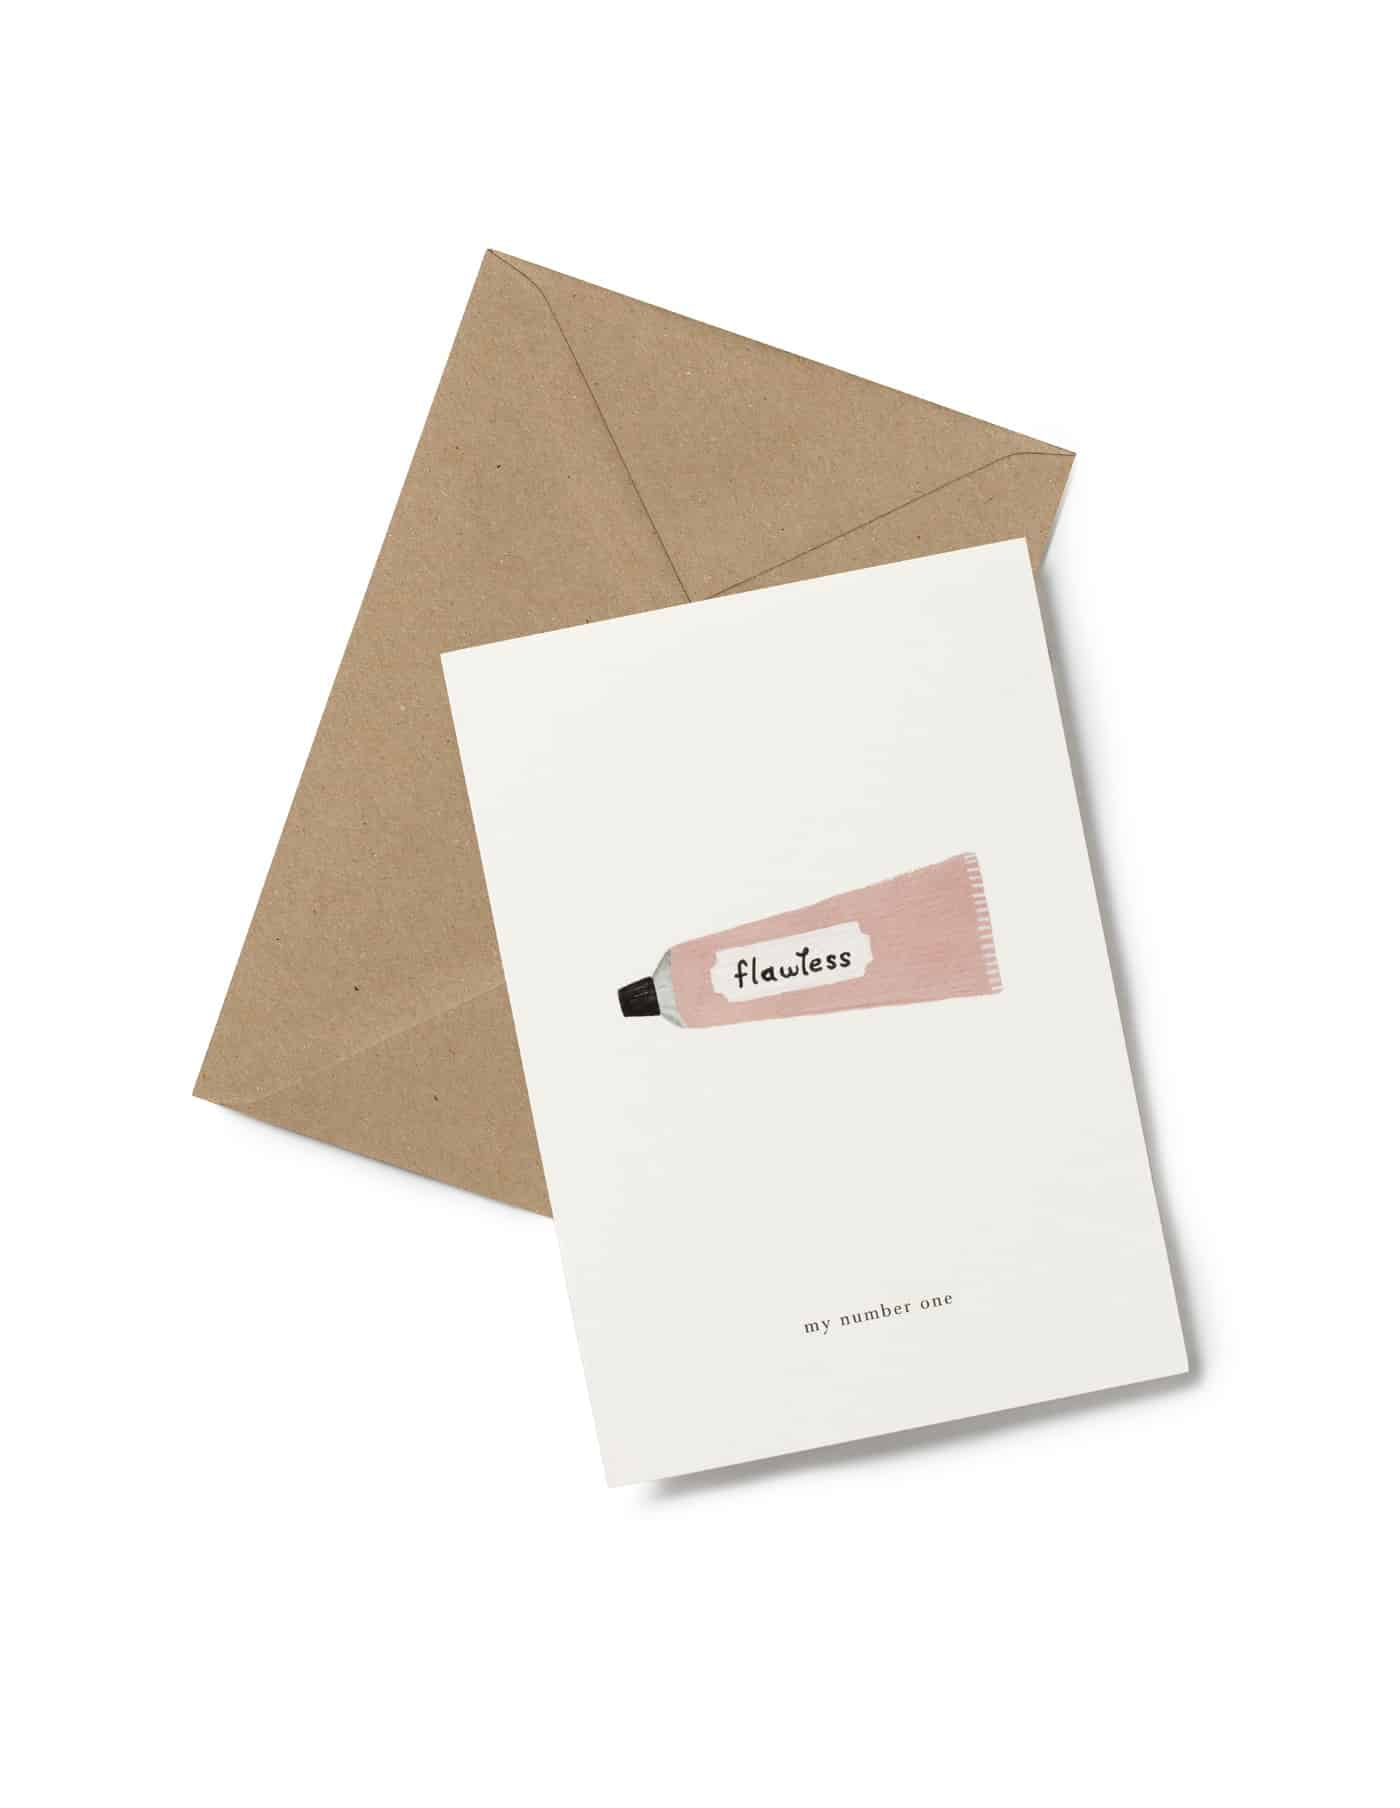 Kartotek 'flawless' Greeting Card